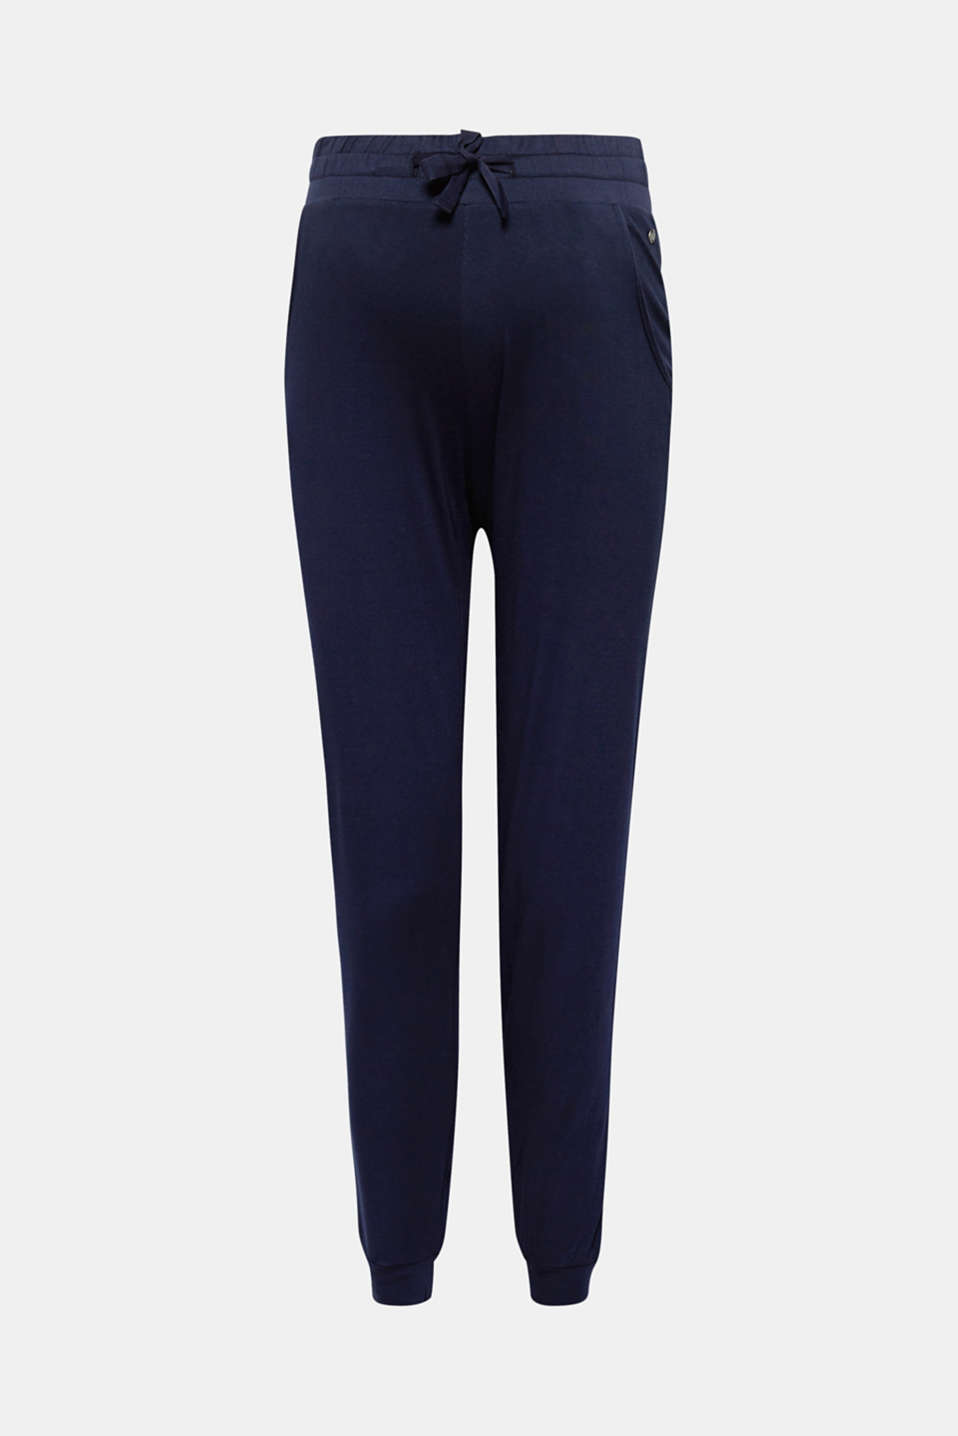 You will love the smooth, snug feel of these flowing jersey trousers with an adjustable under-bump waistband!